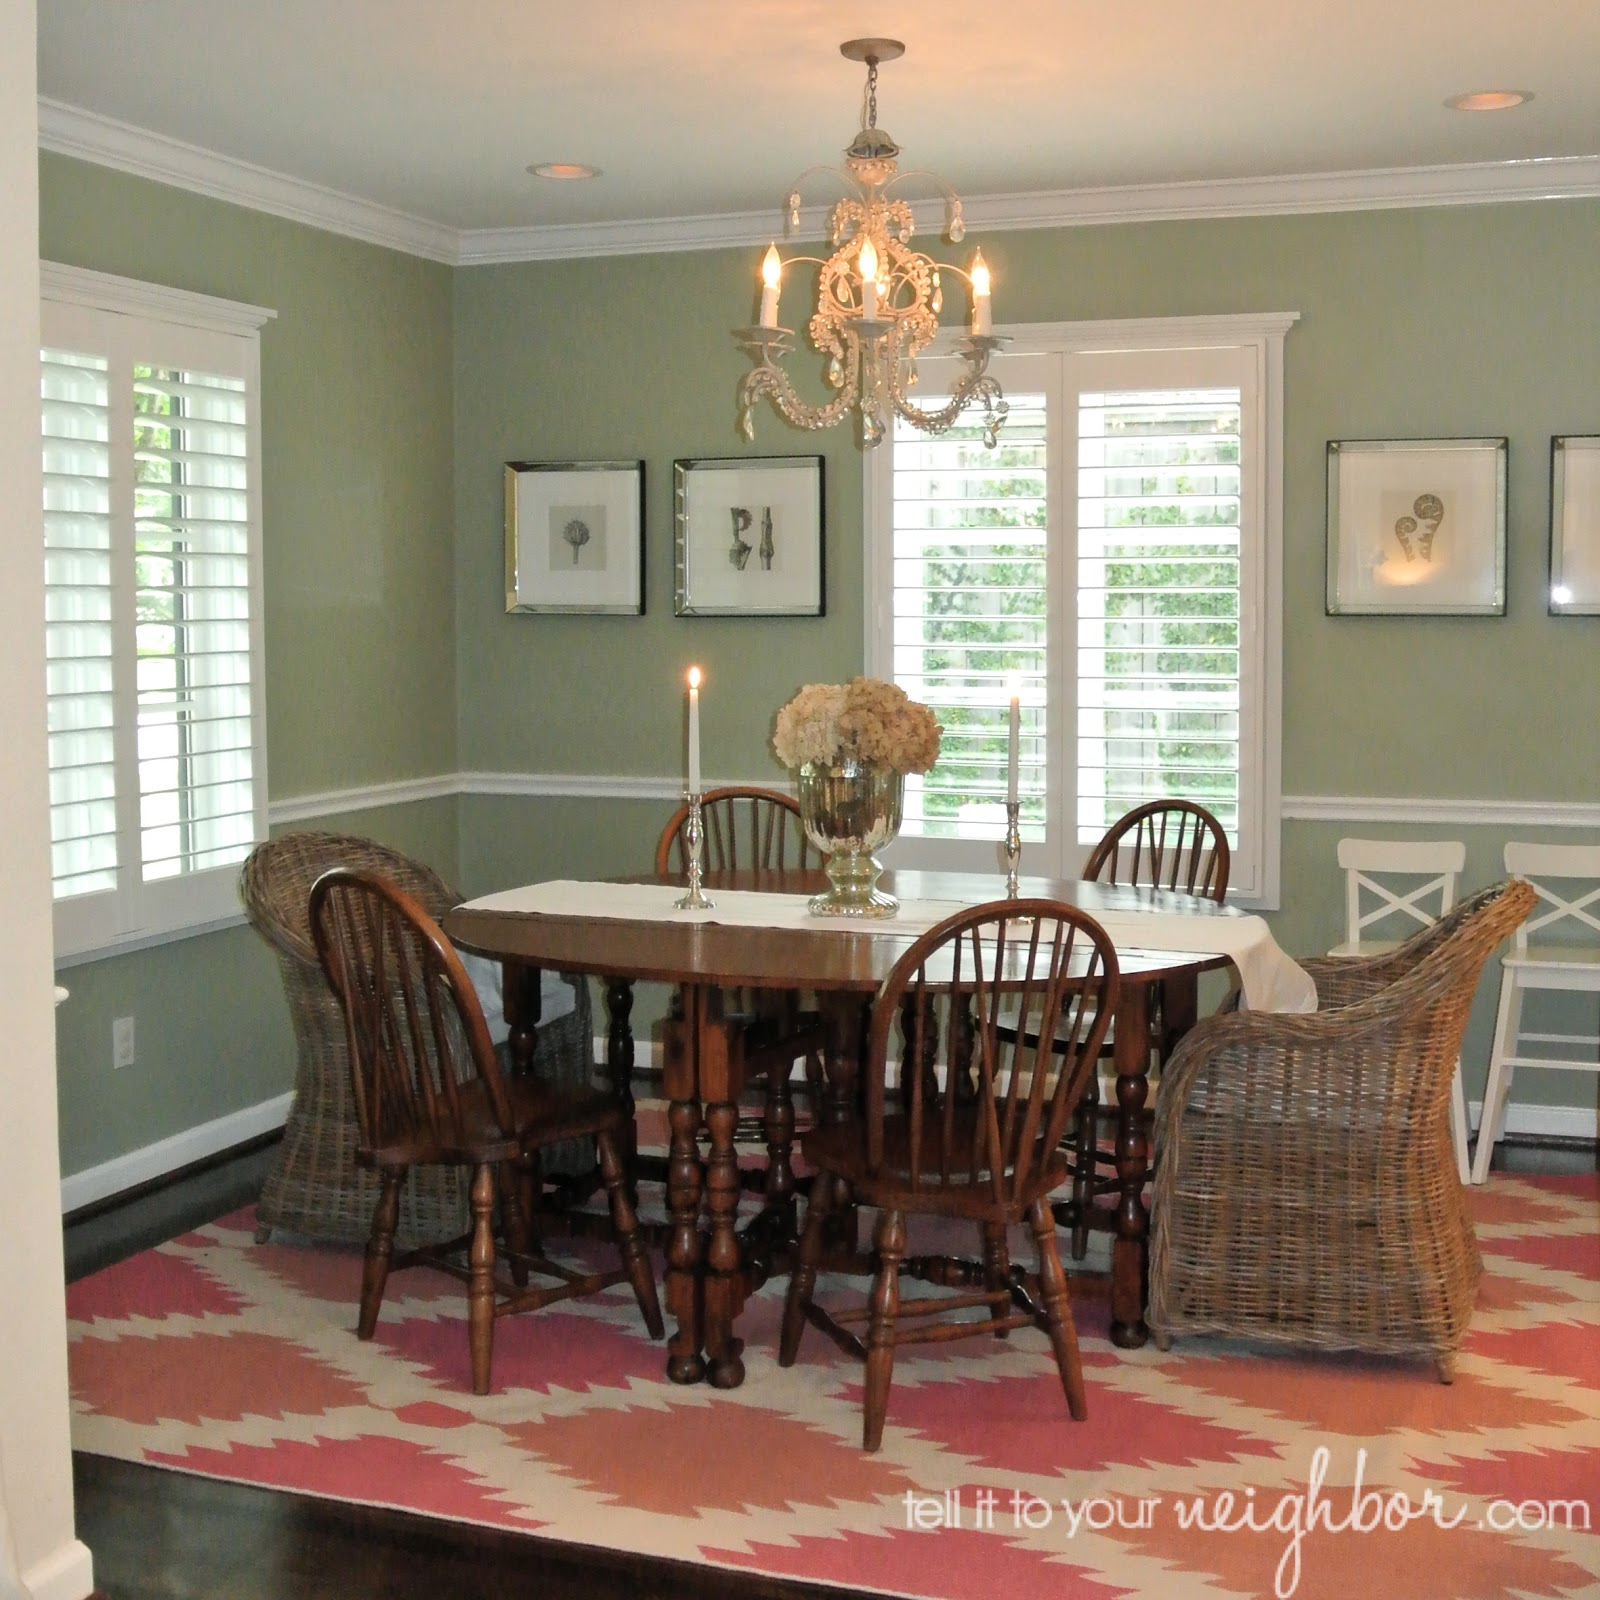 Tell It To Your Neighbor Dining Room Rug Interiors Inside Ideas Interiors design about Everything [magnanprojects.com]